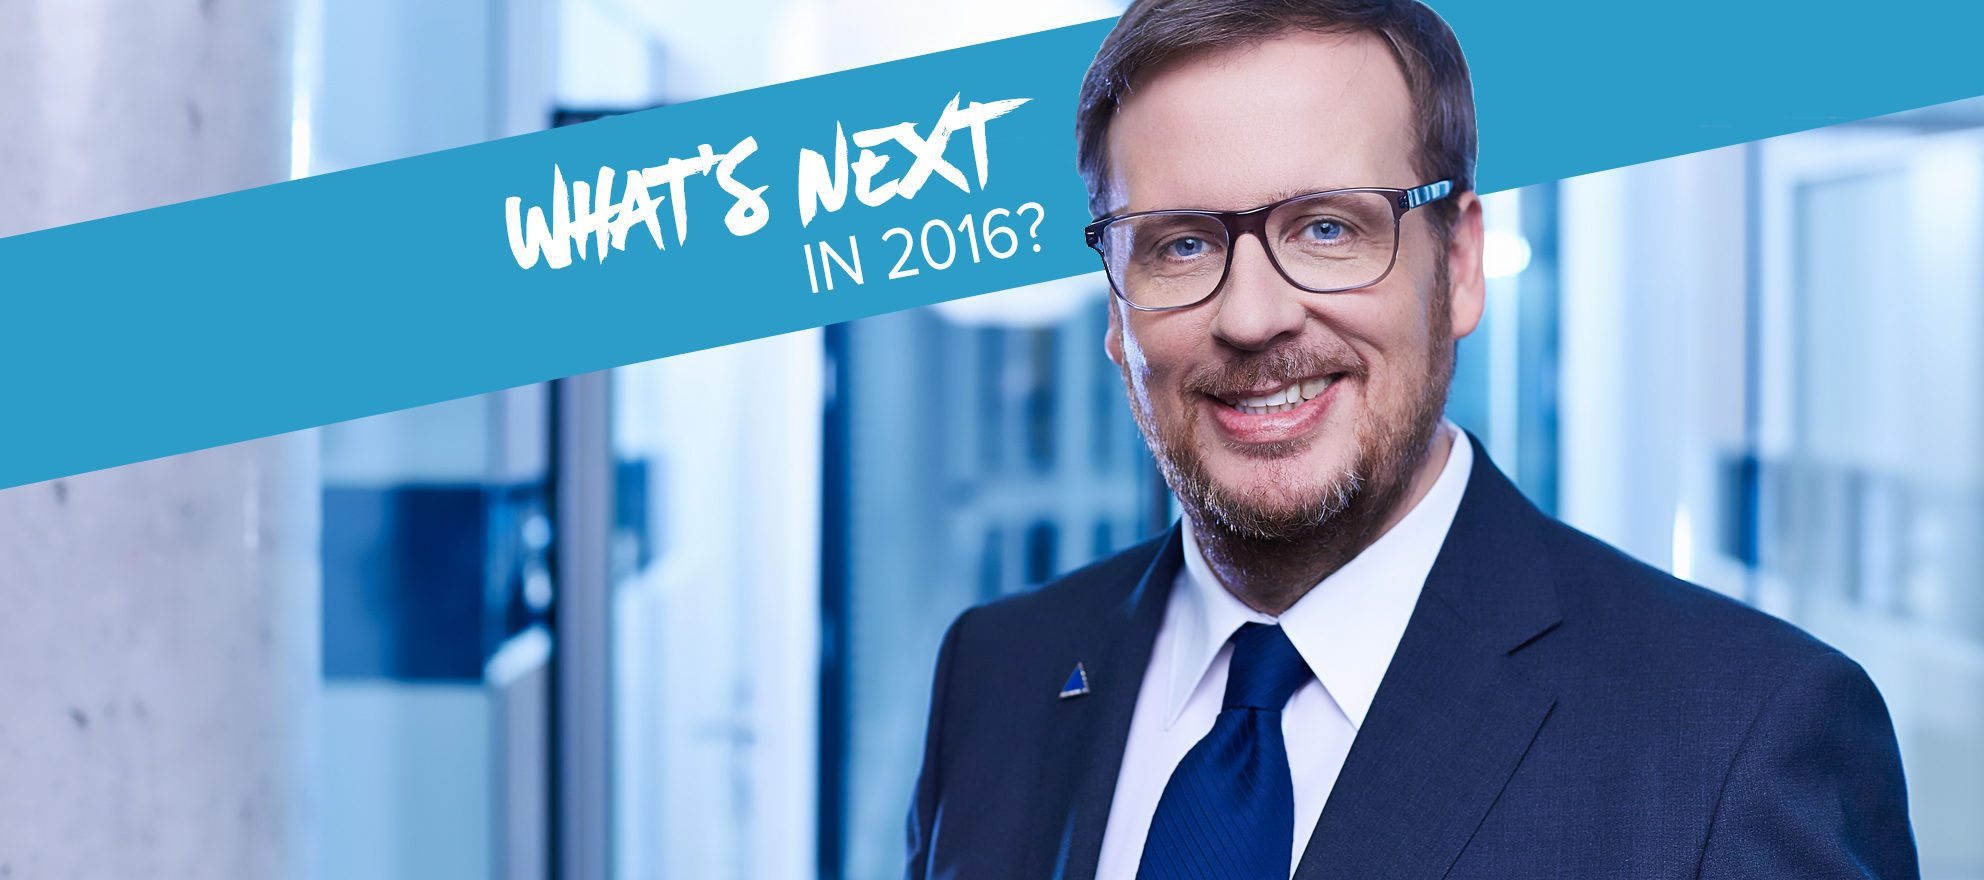 Roland Kampmeyer on what's next in 2016